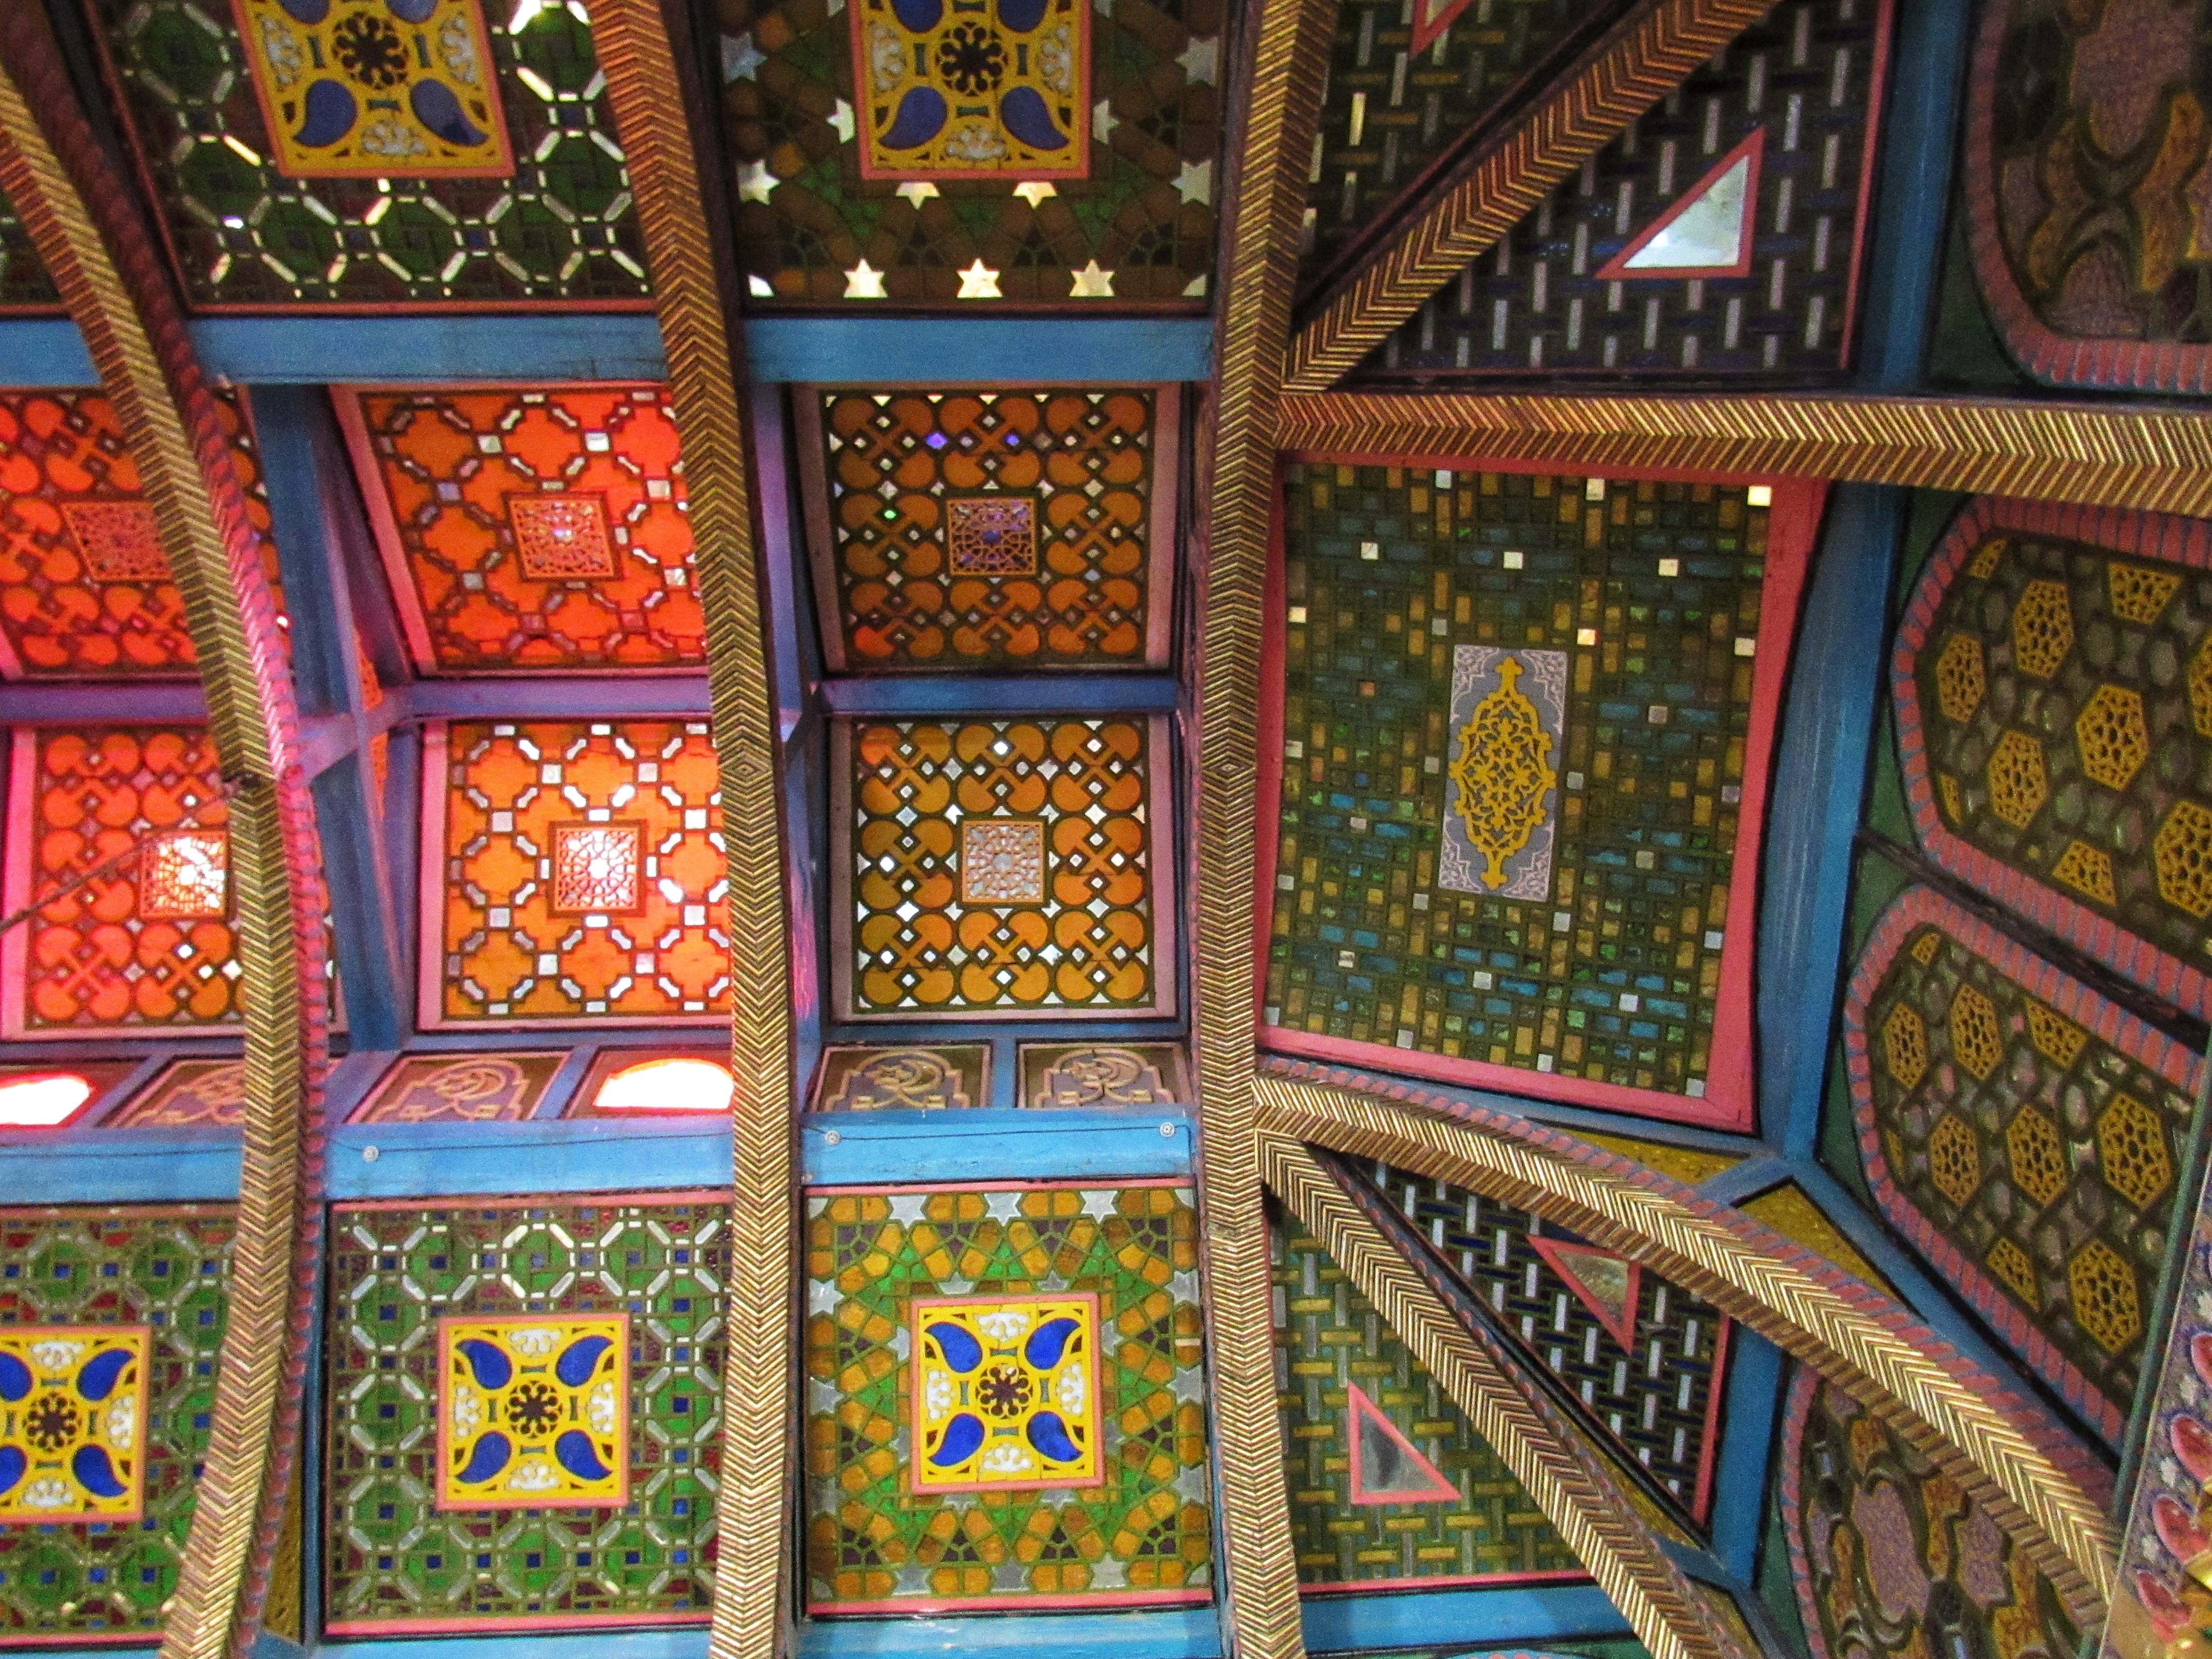 Colourful glass tiled ceiling in the Sitorai Mokhi-Khosa Palace